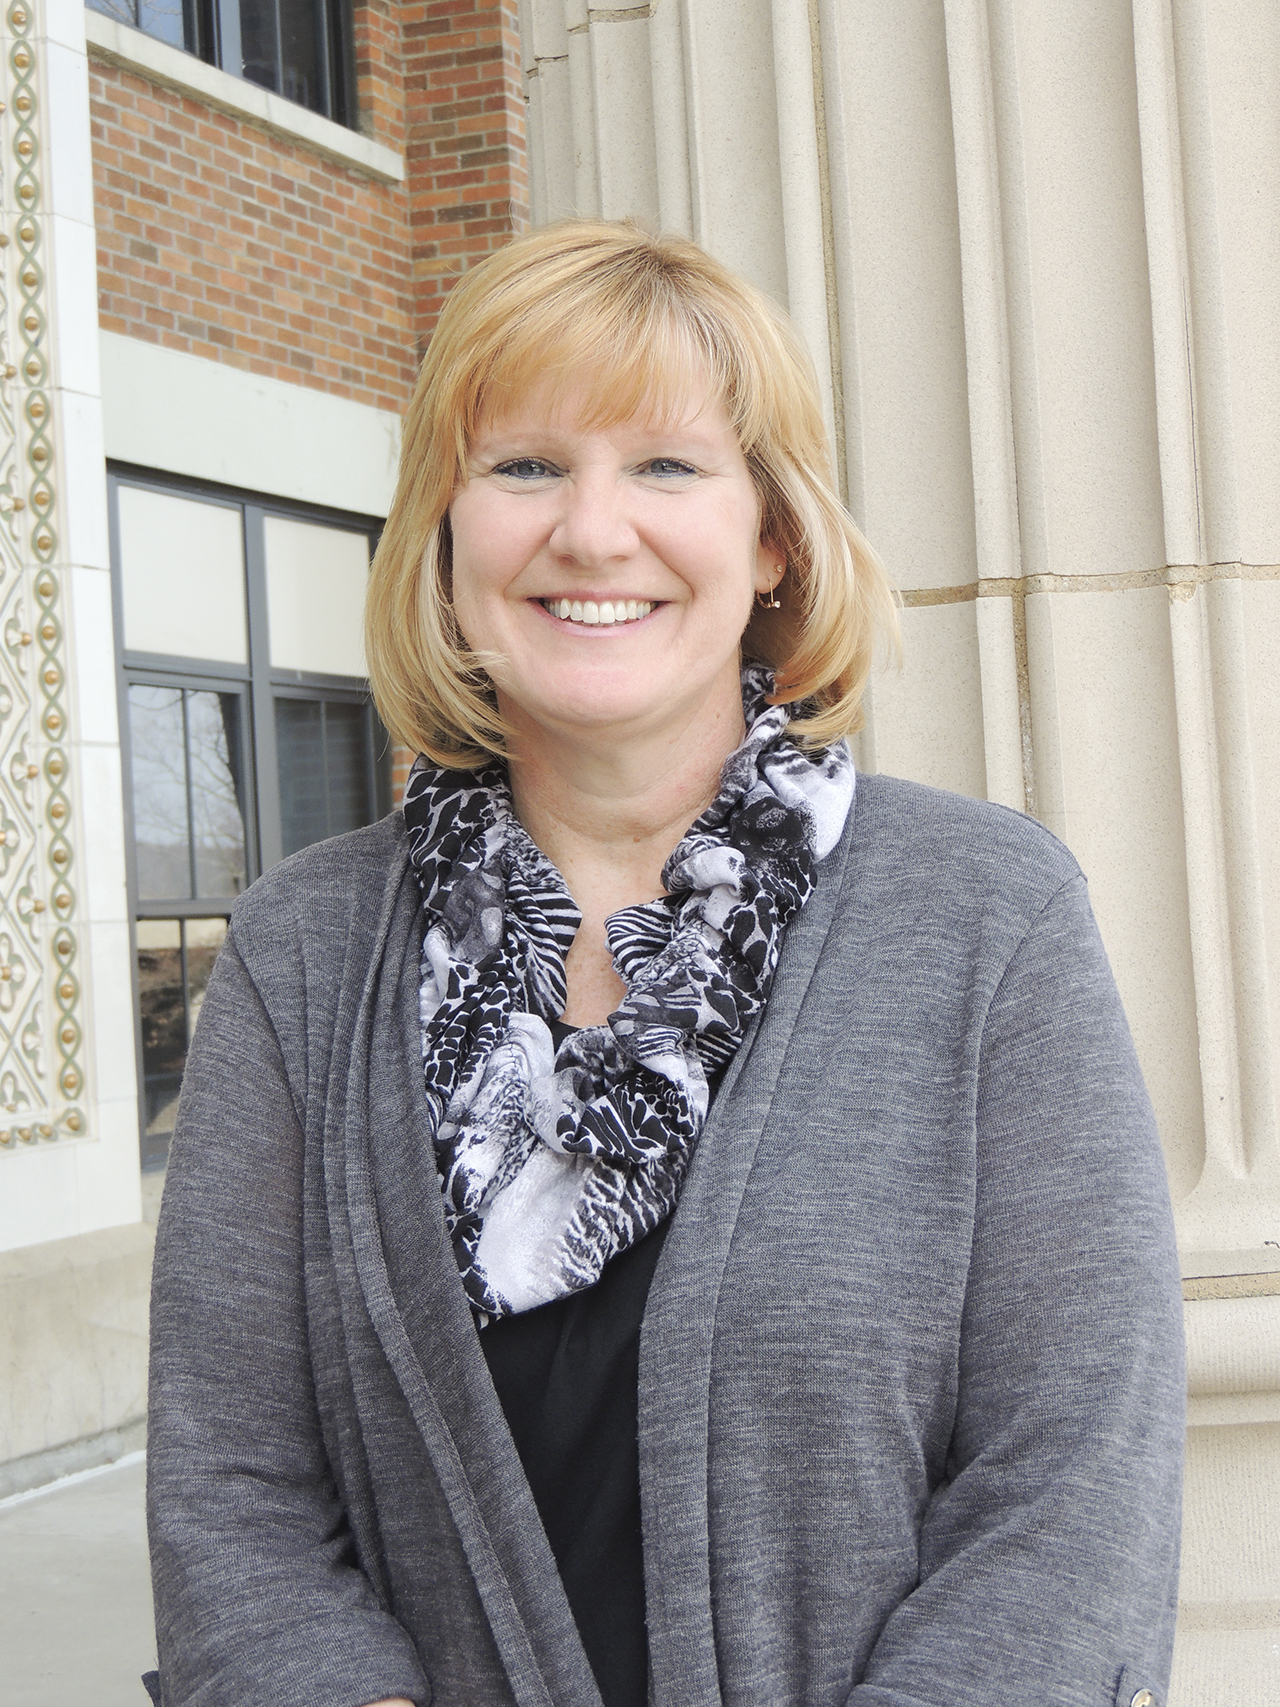 Keuka College's Elizabeth Lambert earns National Honor for Achievement in Student Success